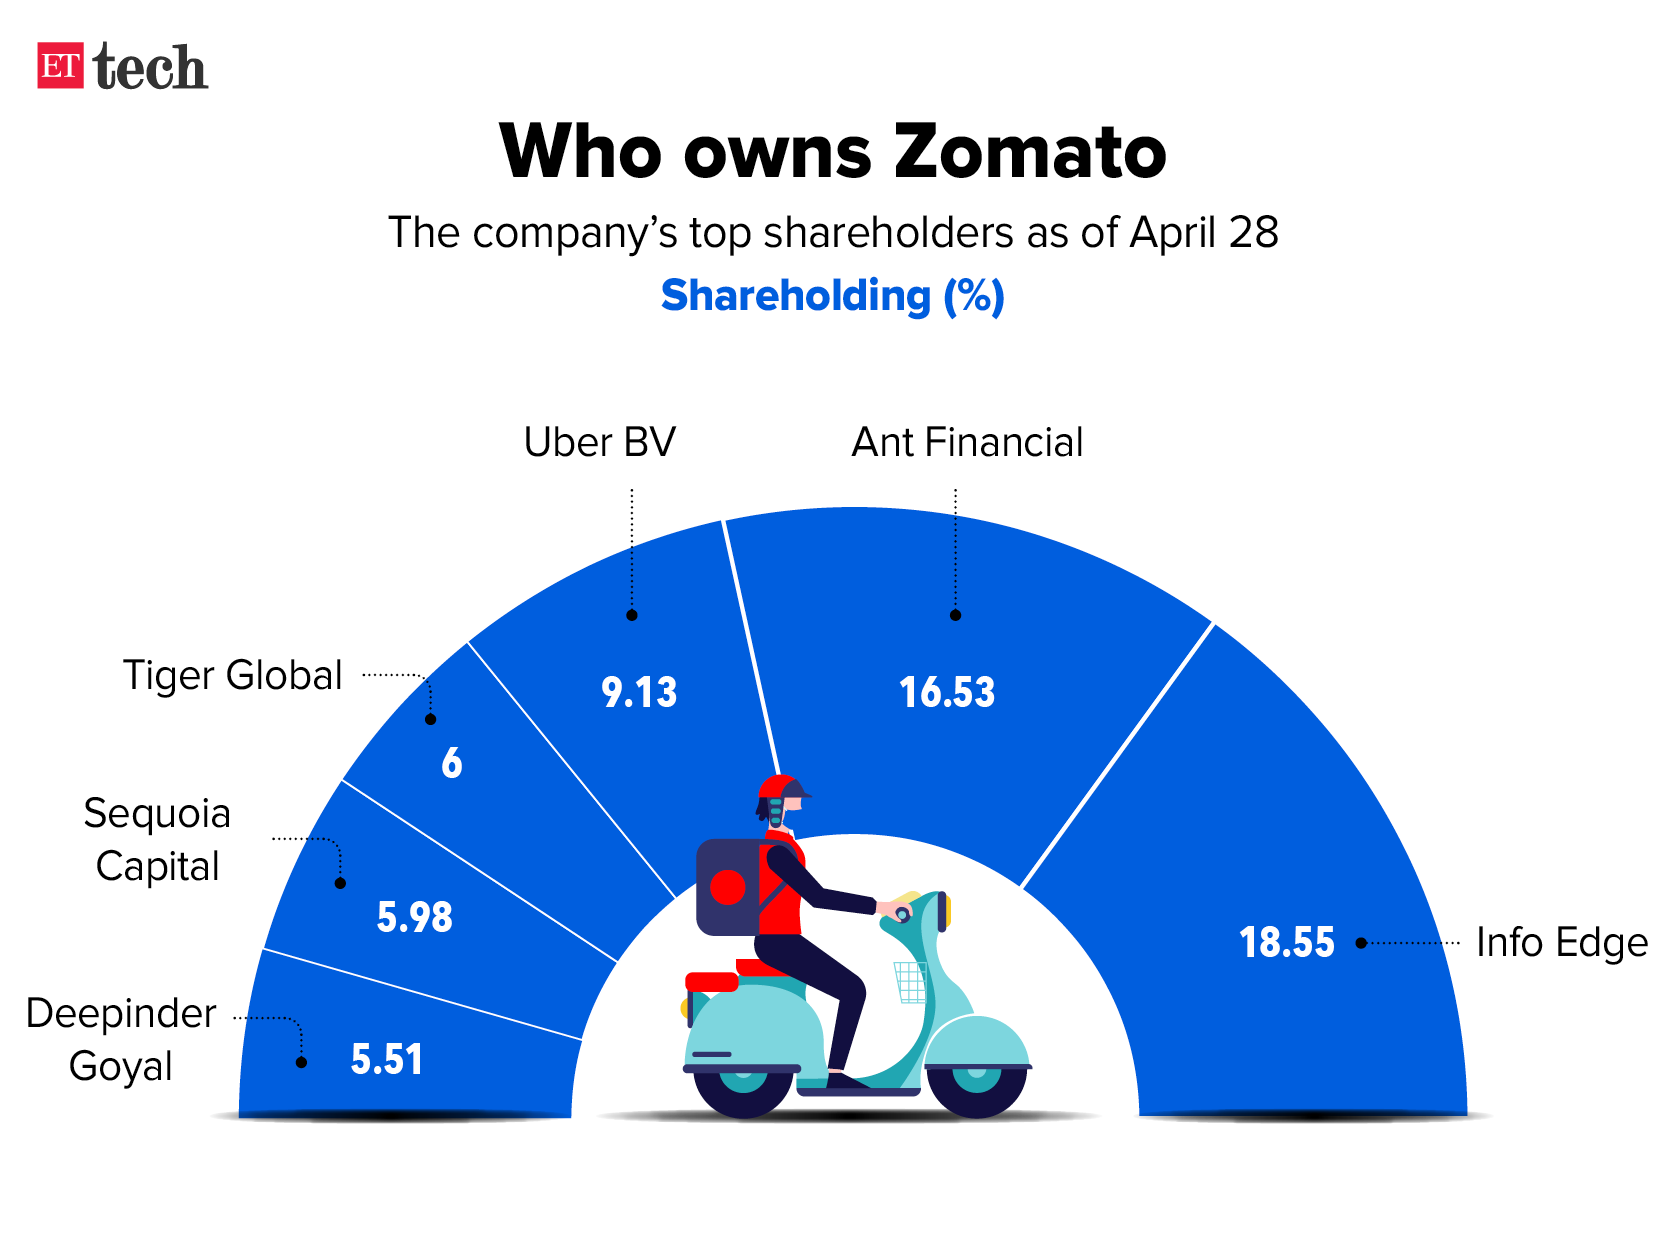 Zomato shareholding